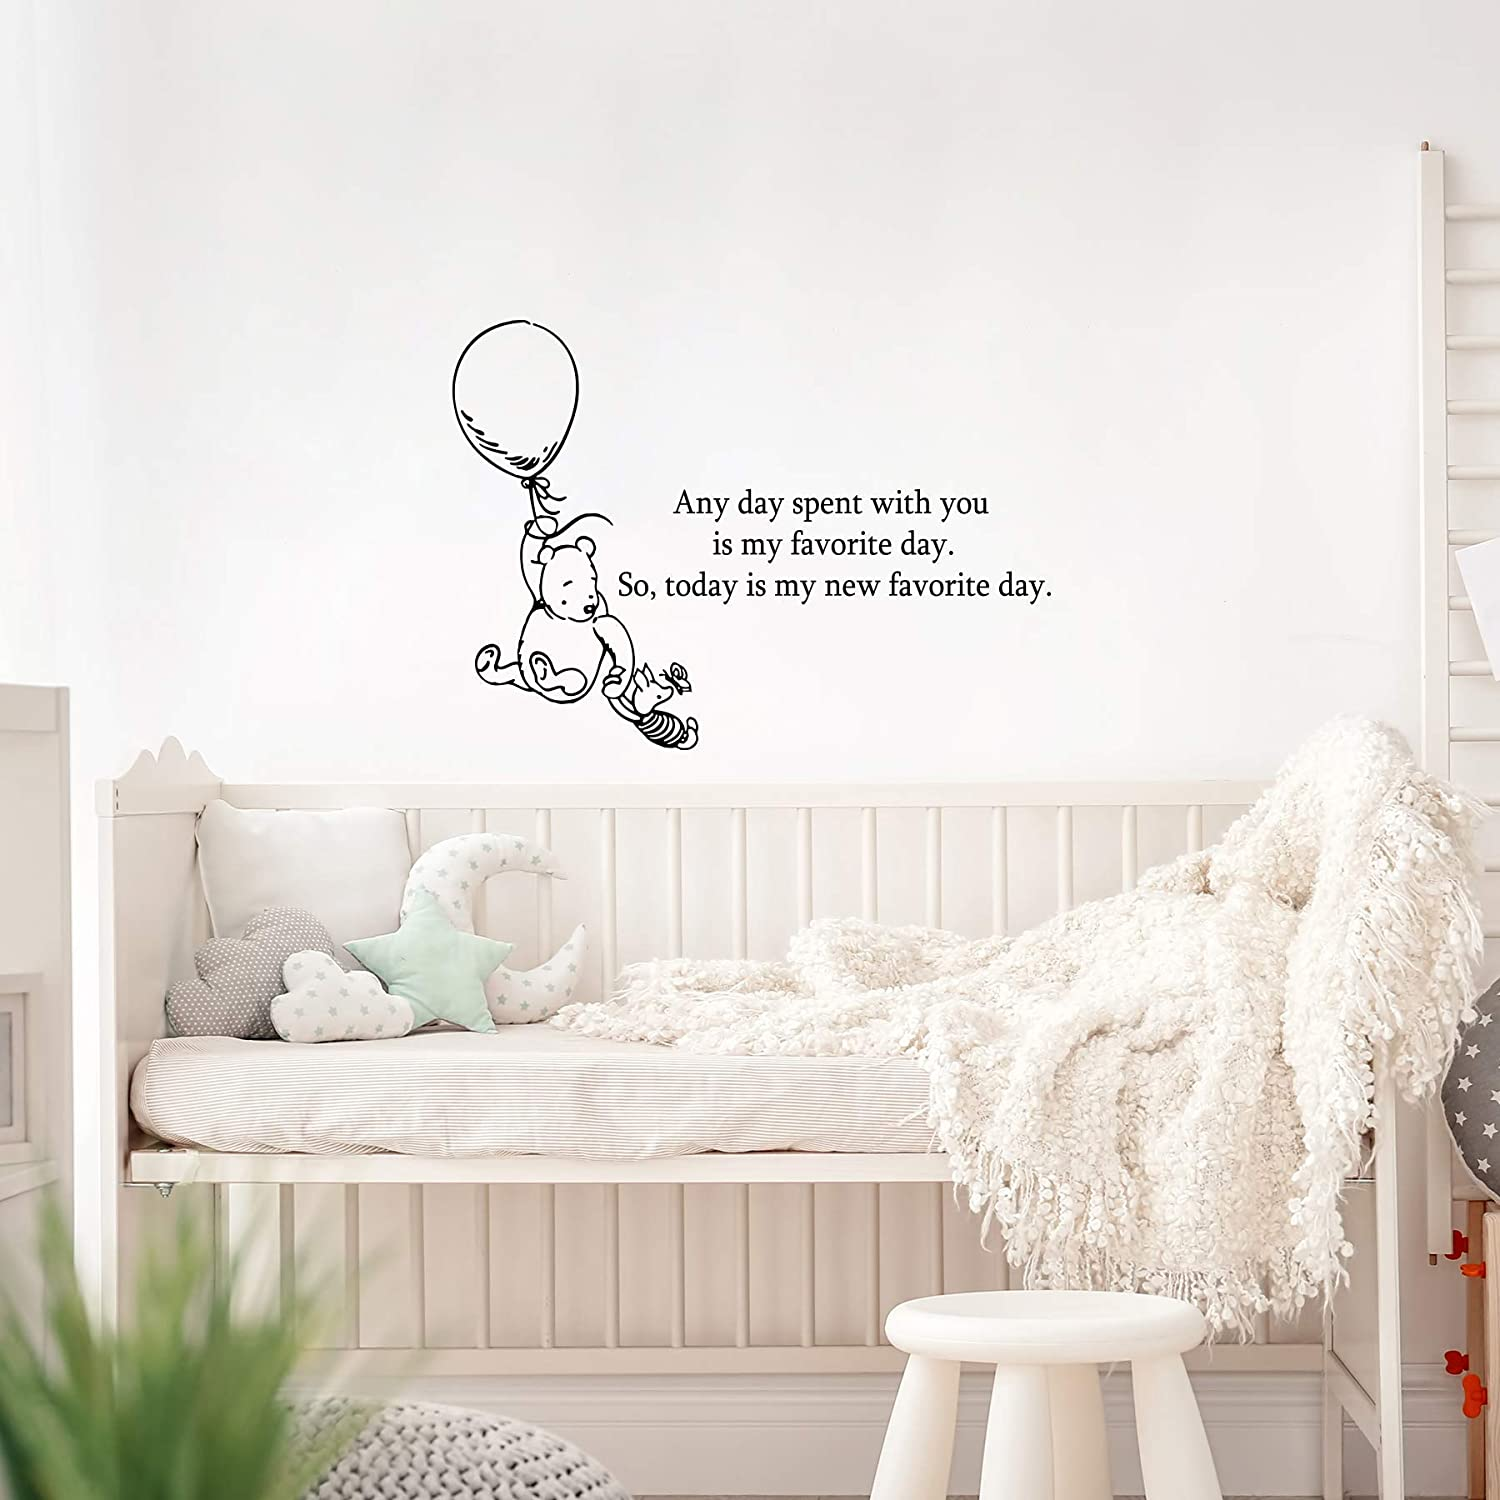 AM59 Winnie the Pooh Quotes Decal for Nursery Any Day Spent with You is My Favorite Day Illustration Art Print Nursery Kids Wall Art Decor 18x13